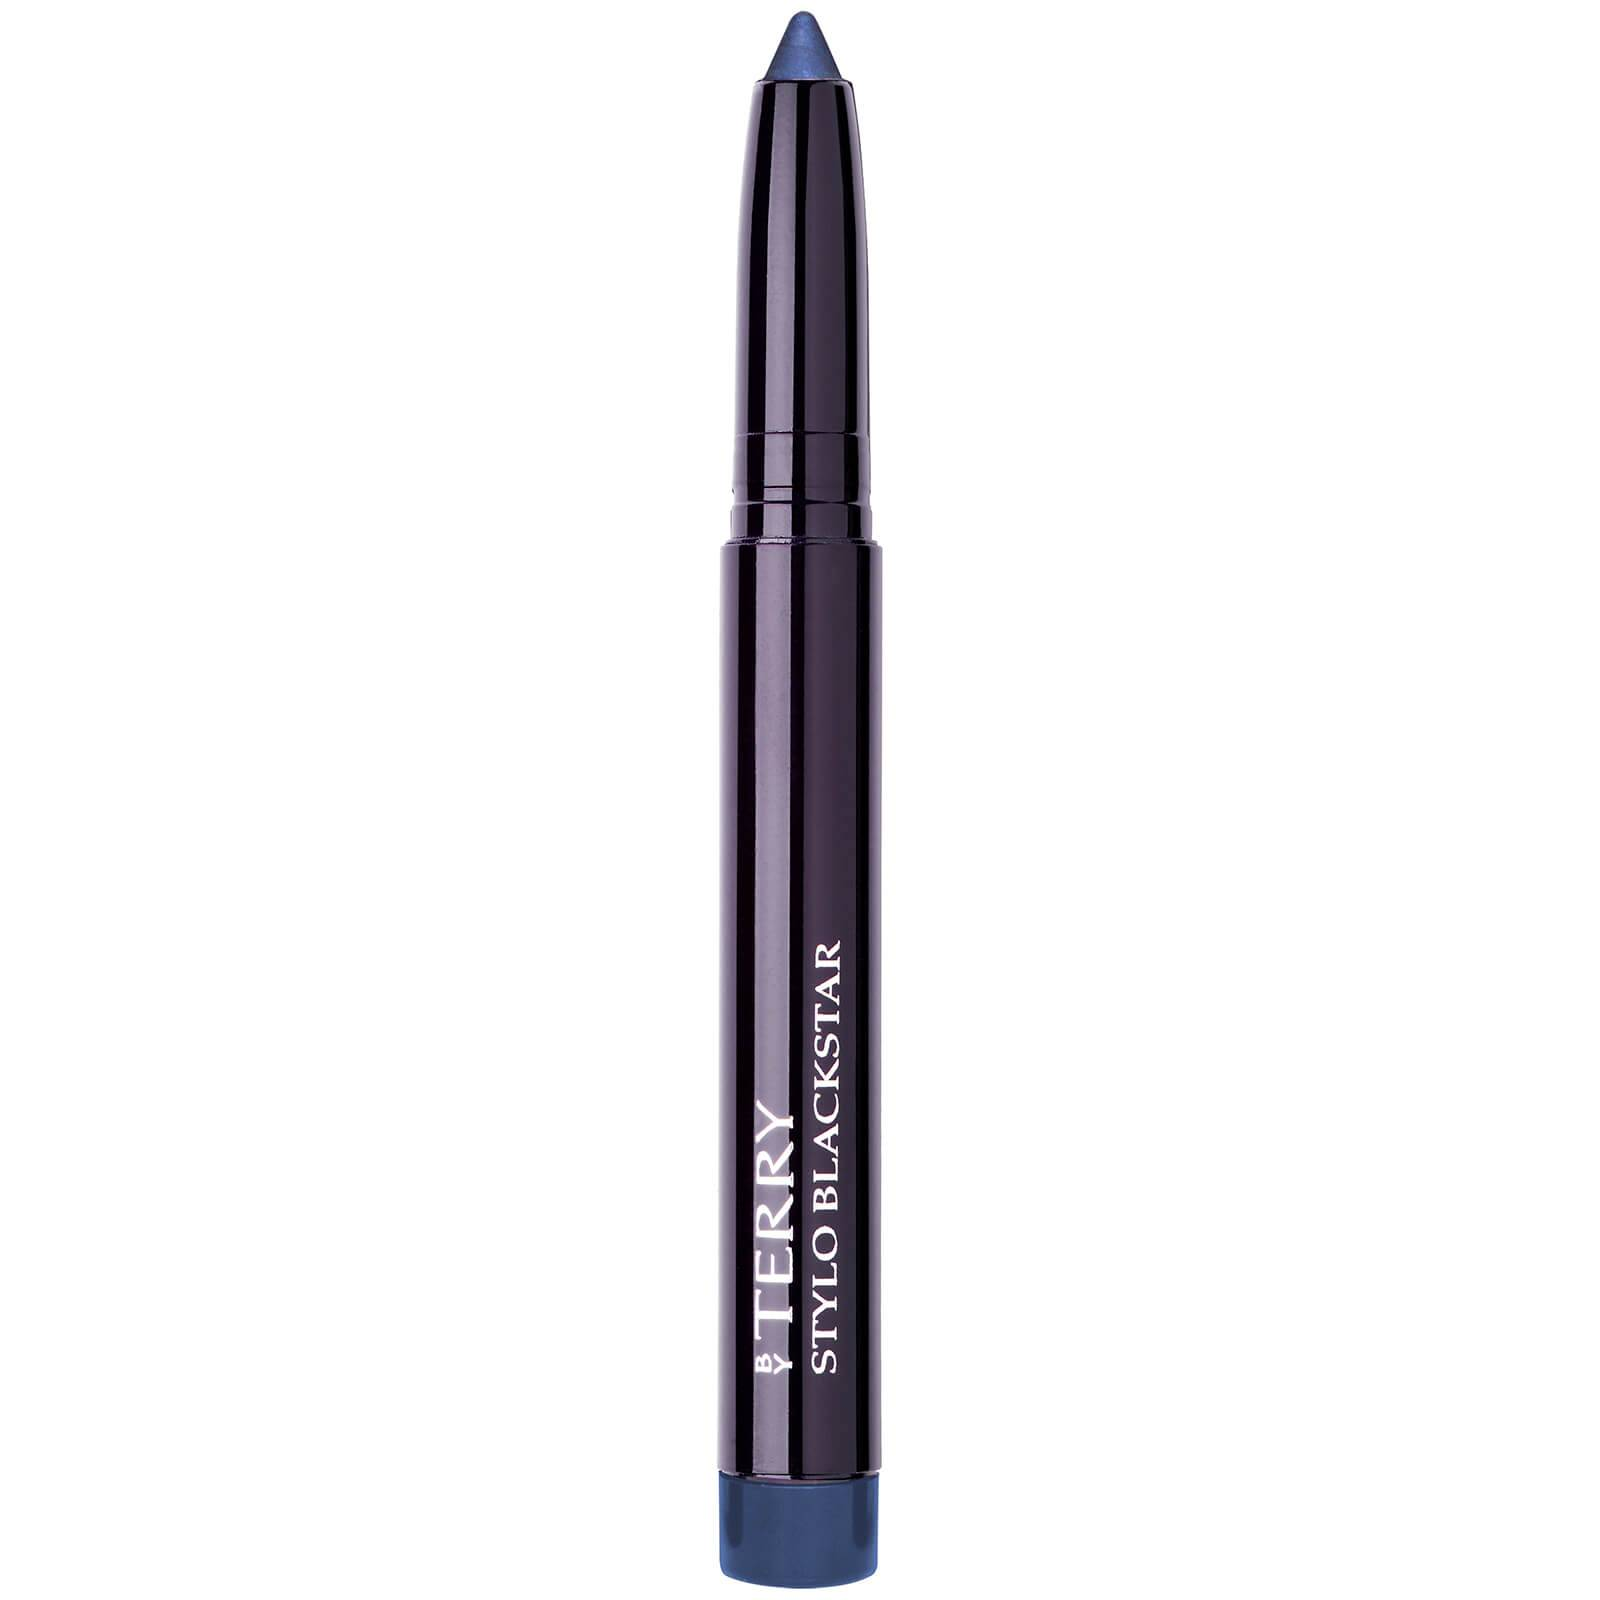 By Terry Stylo Blackstar Eye Liner 1.4g (Various Shades) - No.6 Midnight Ombré